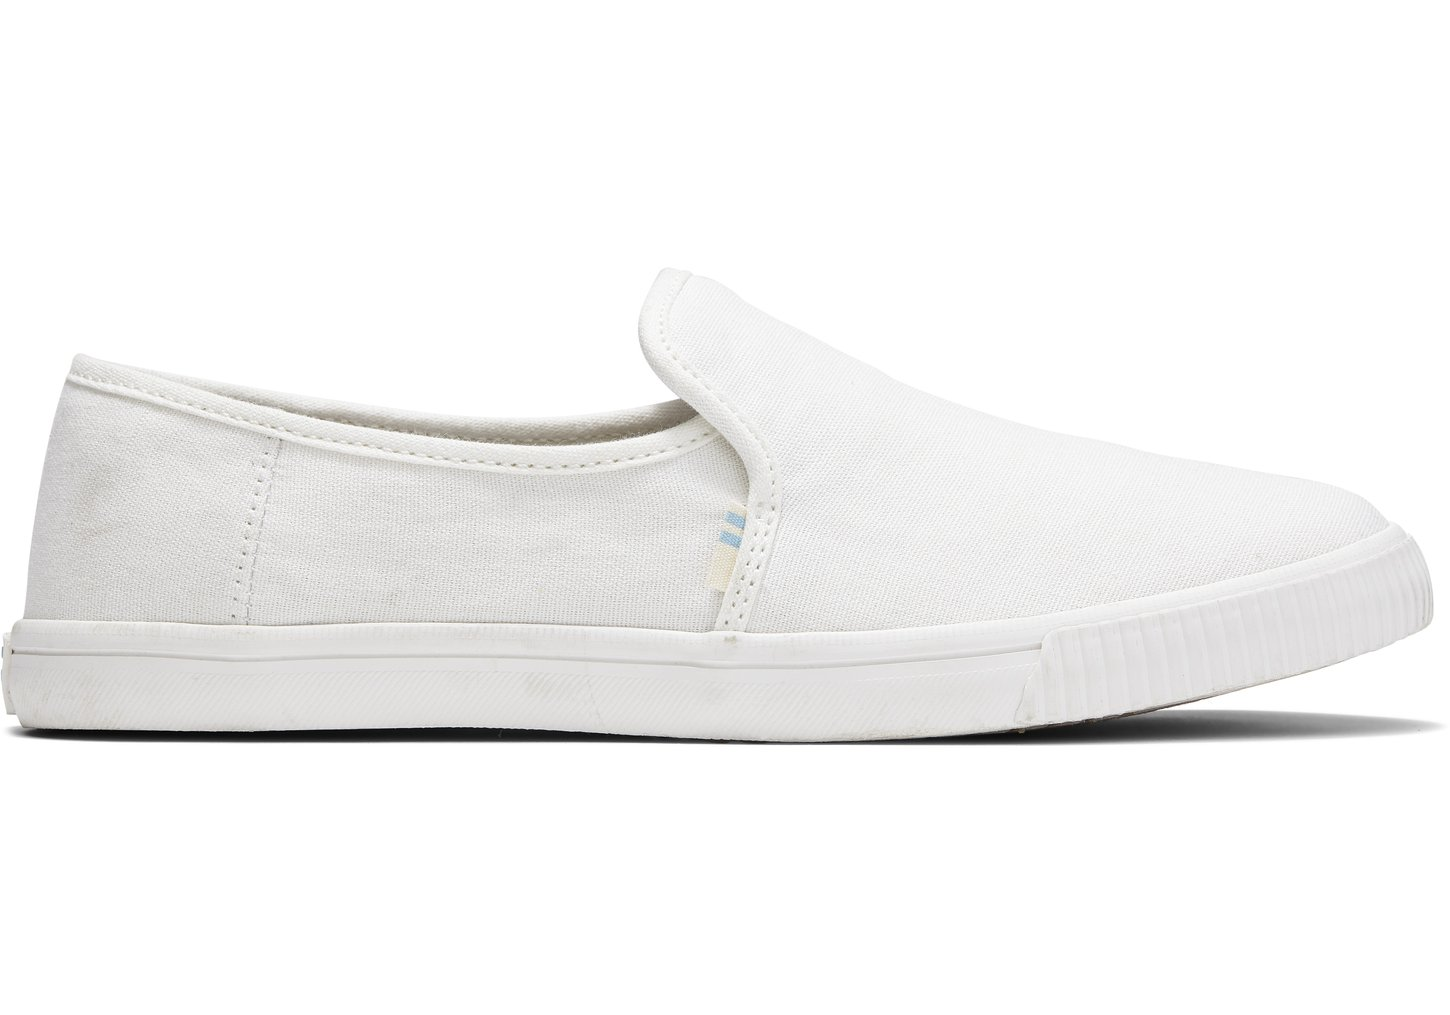 Toms Witte Canvas Clemente Instappers voor Dames White